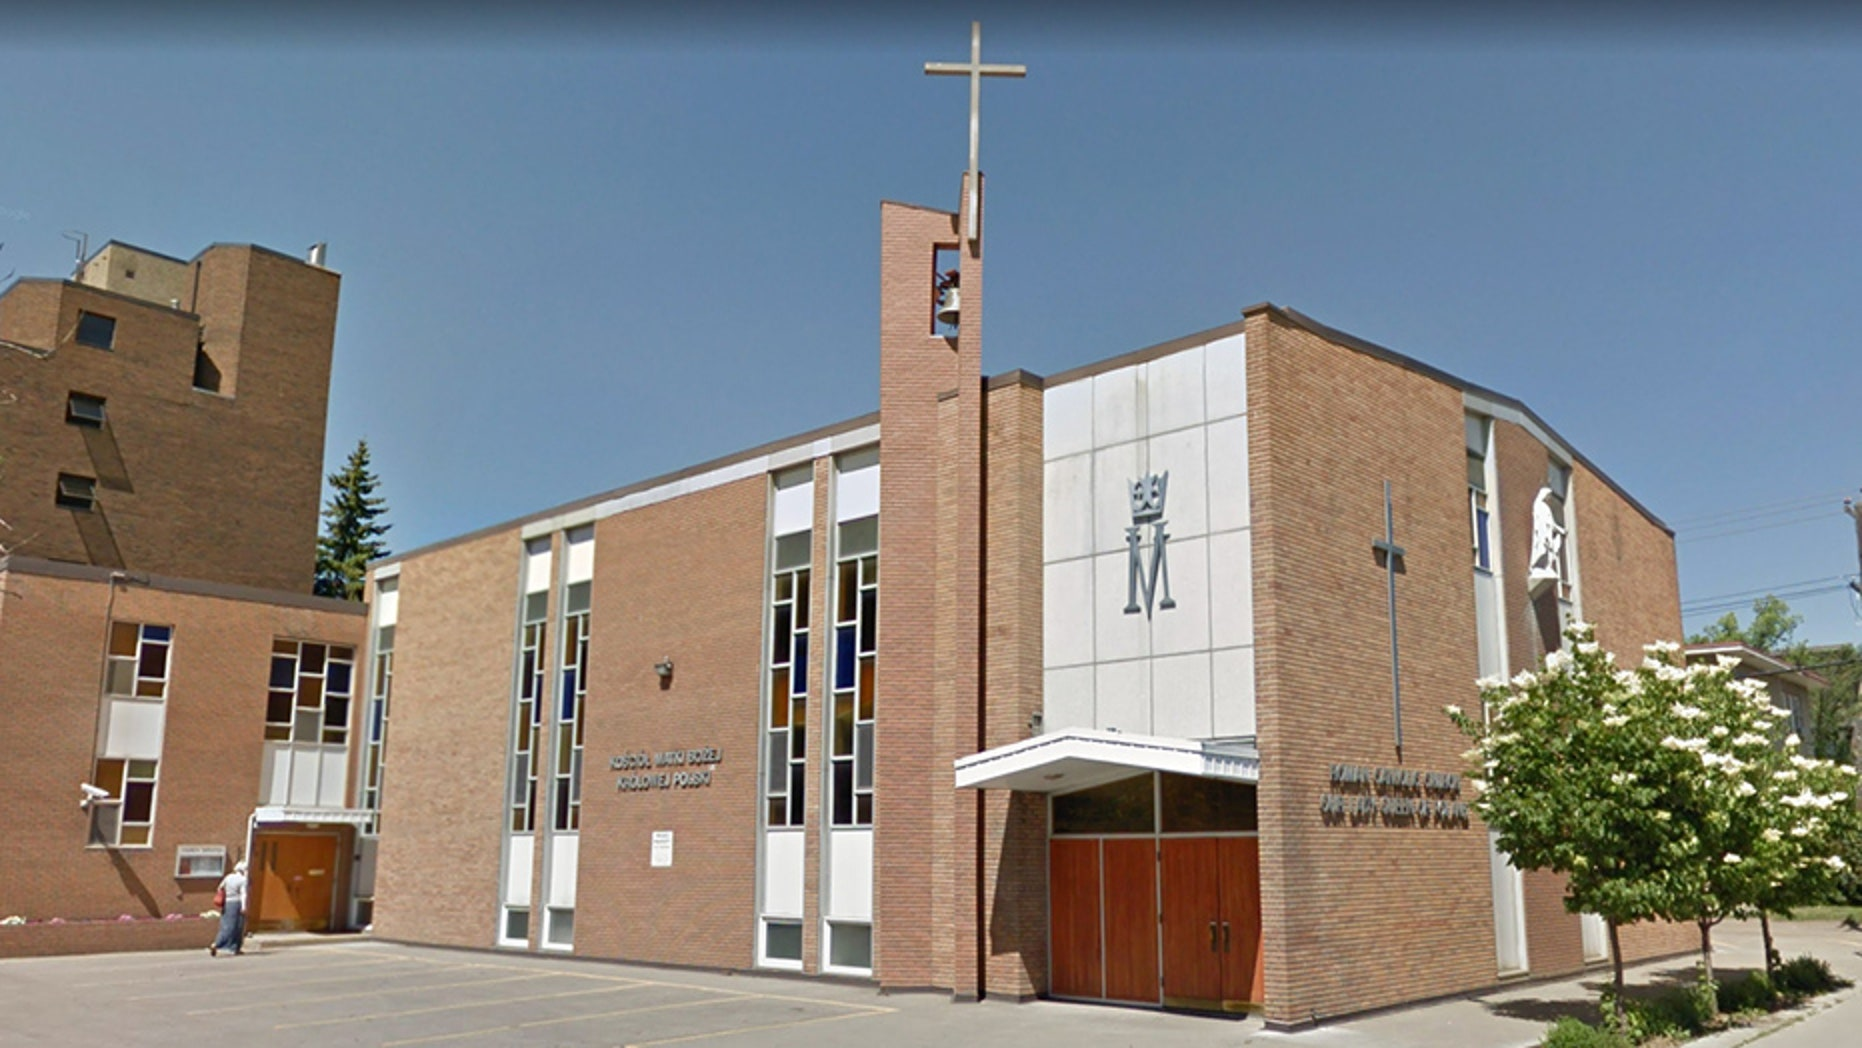 The mystery attack was chased out of the Our Lady Queen of Poland church in Edmonton on March 13, police and officials say.